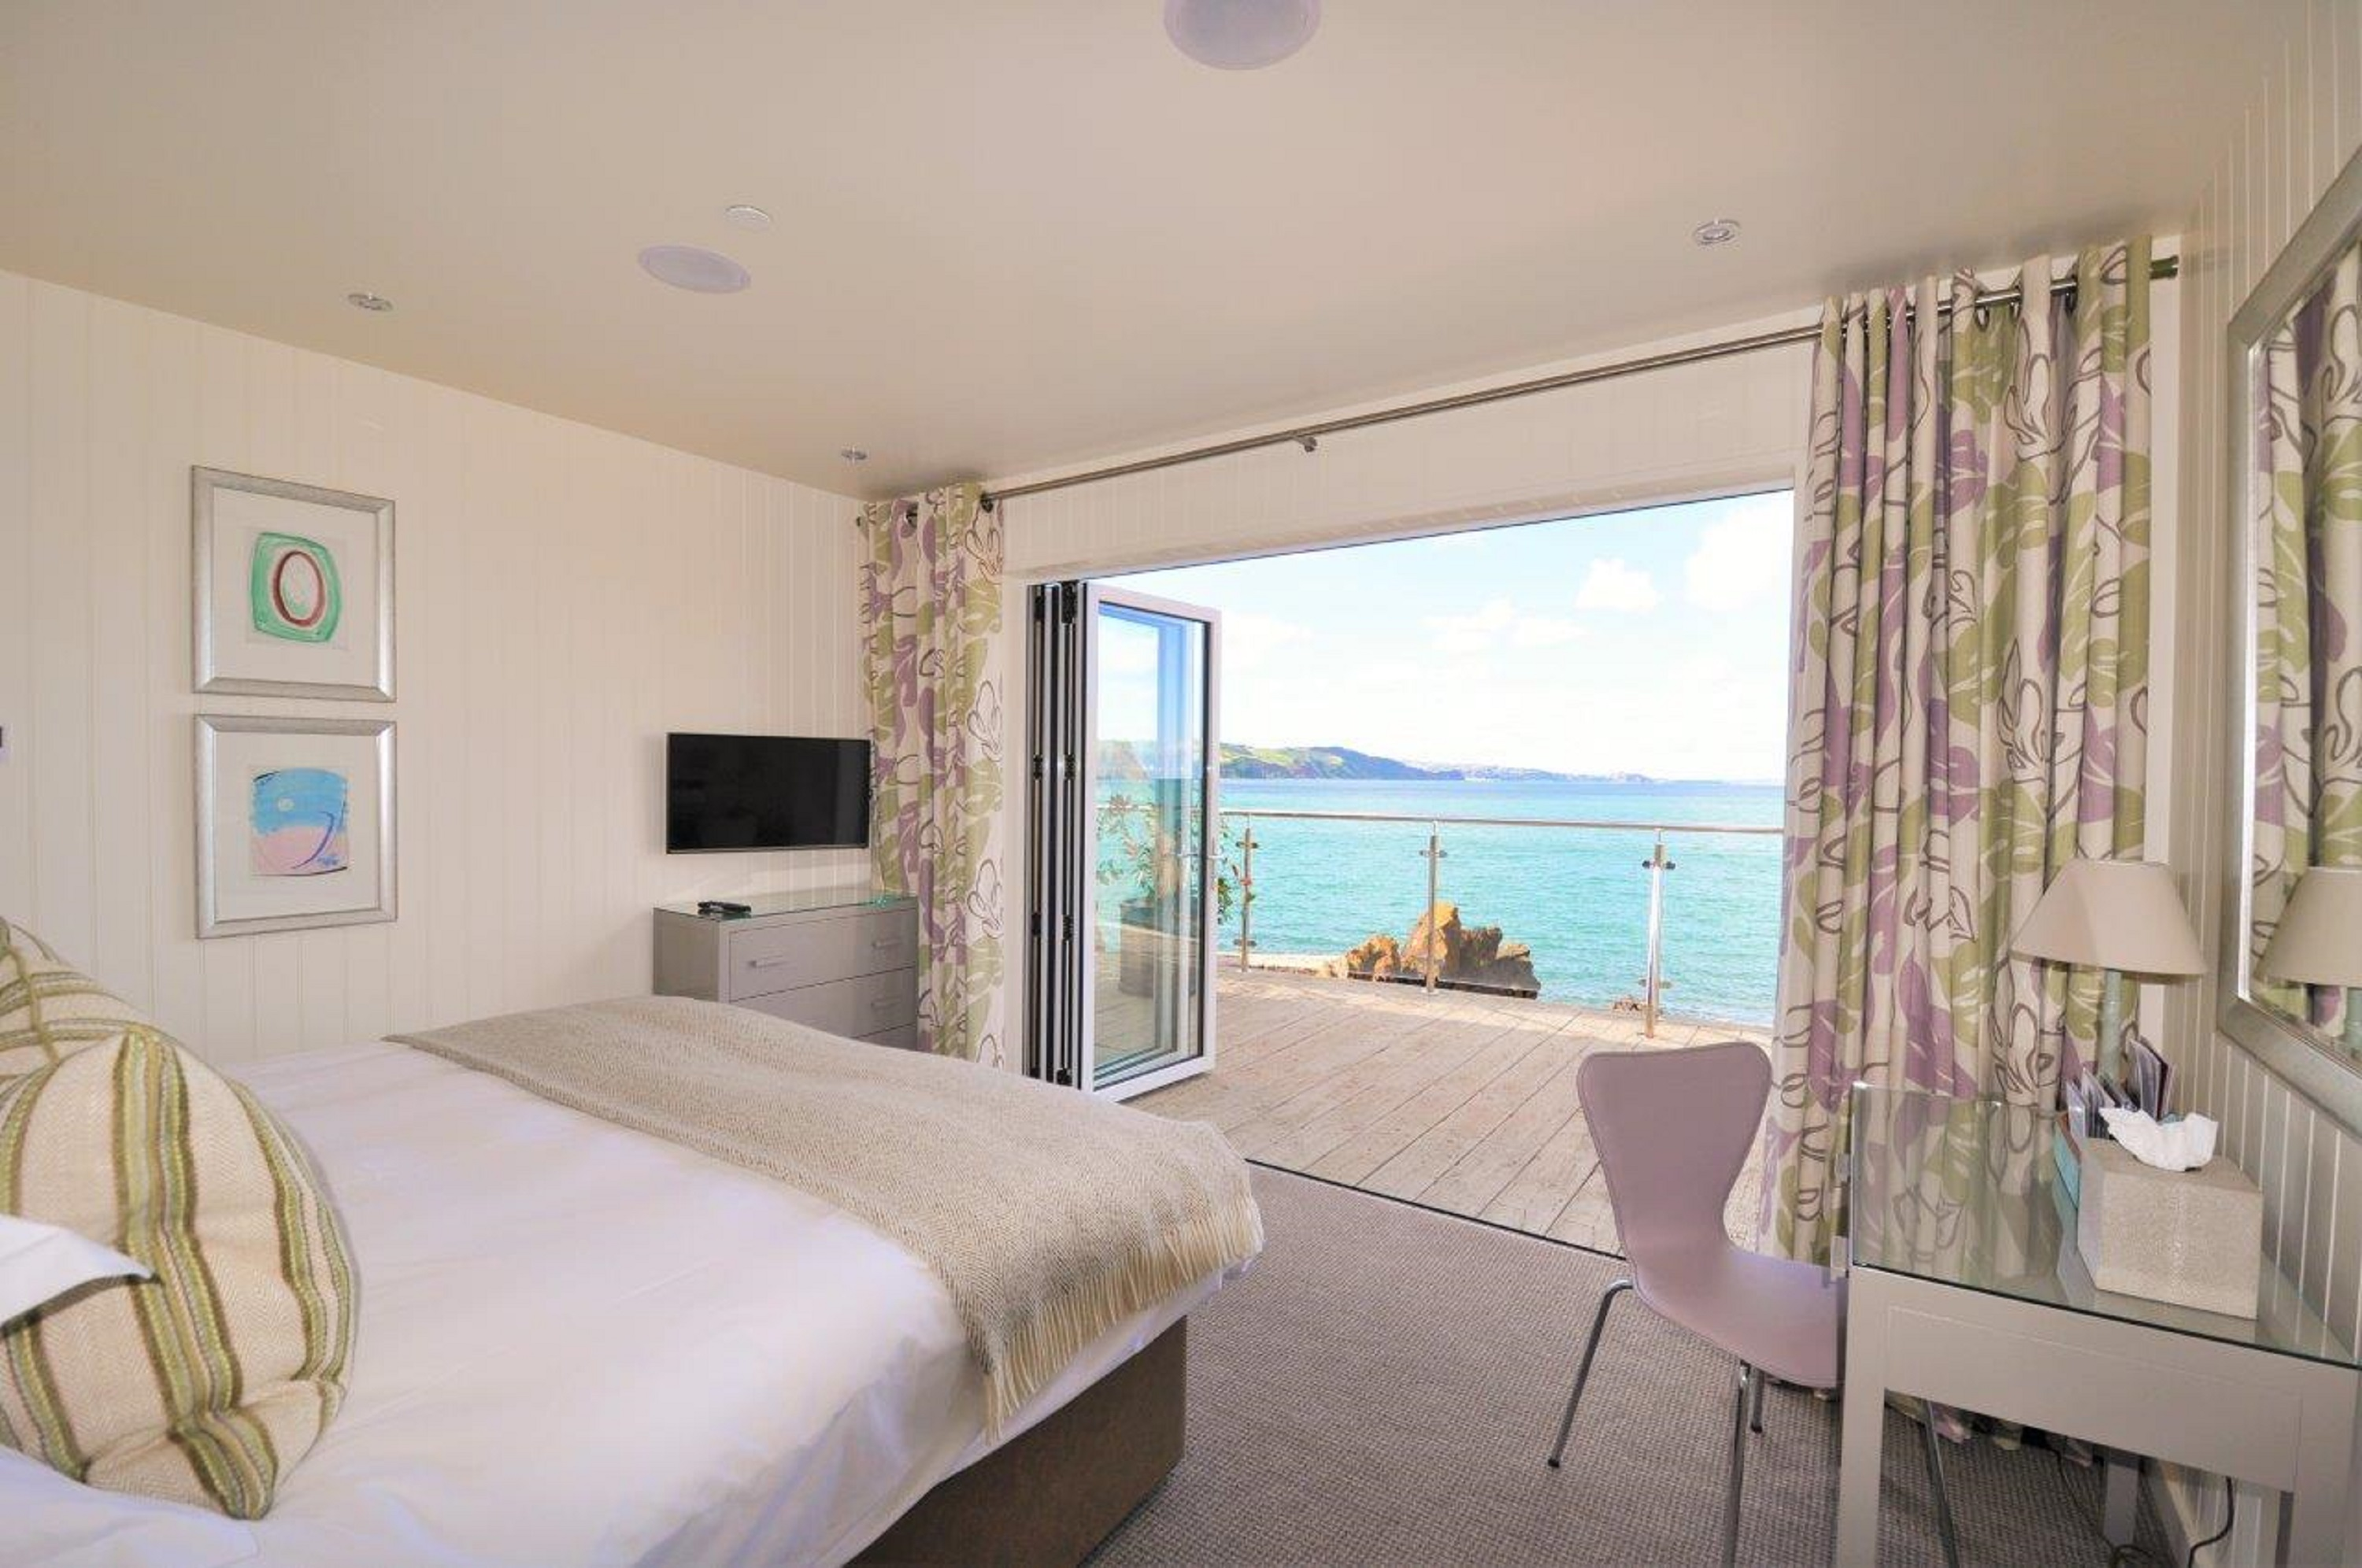 cary arms beach suite torquay